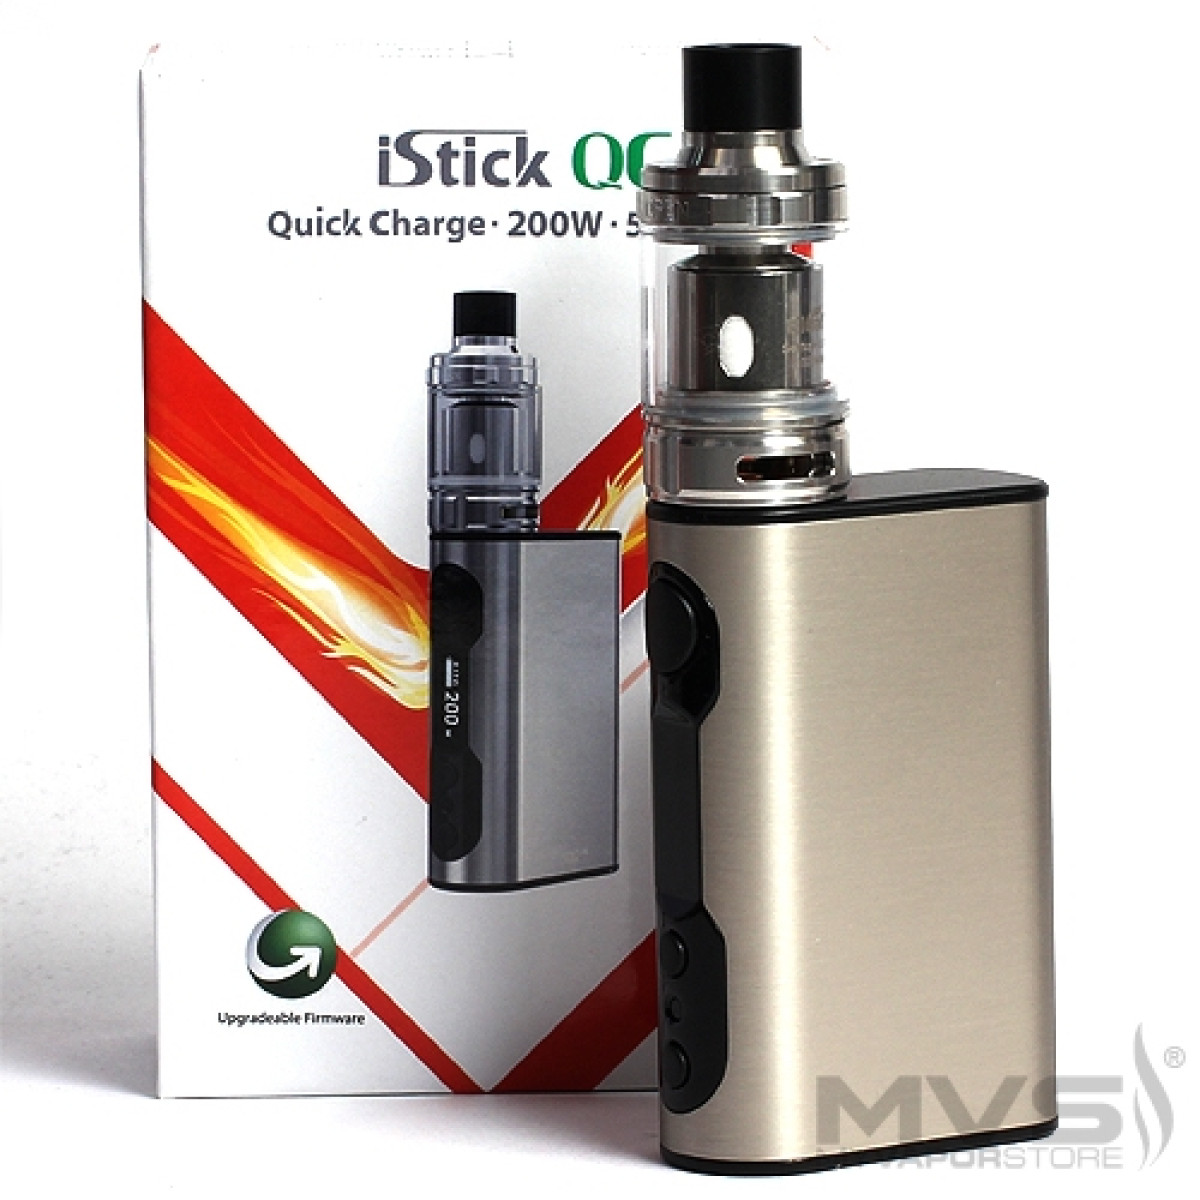 IStickQCW